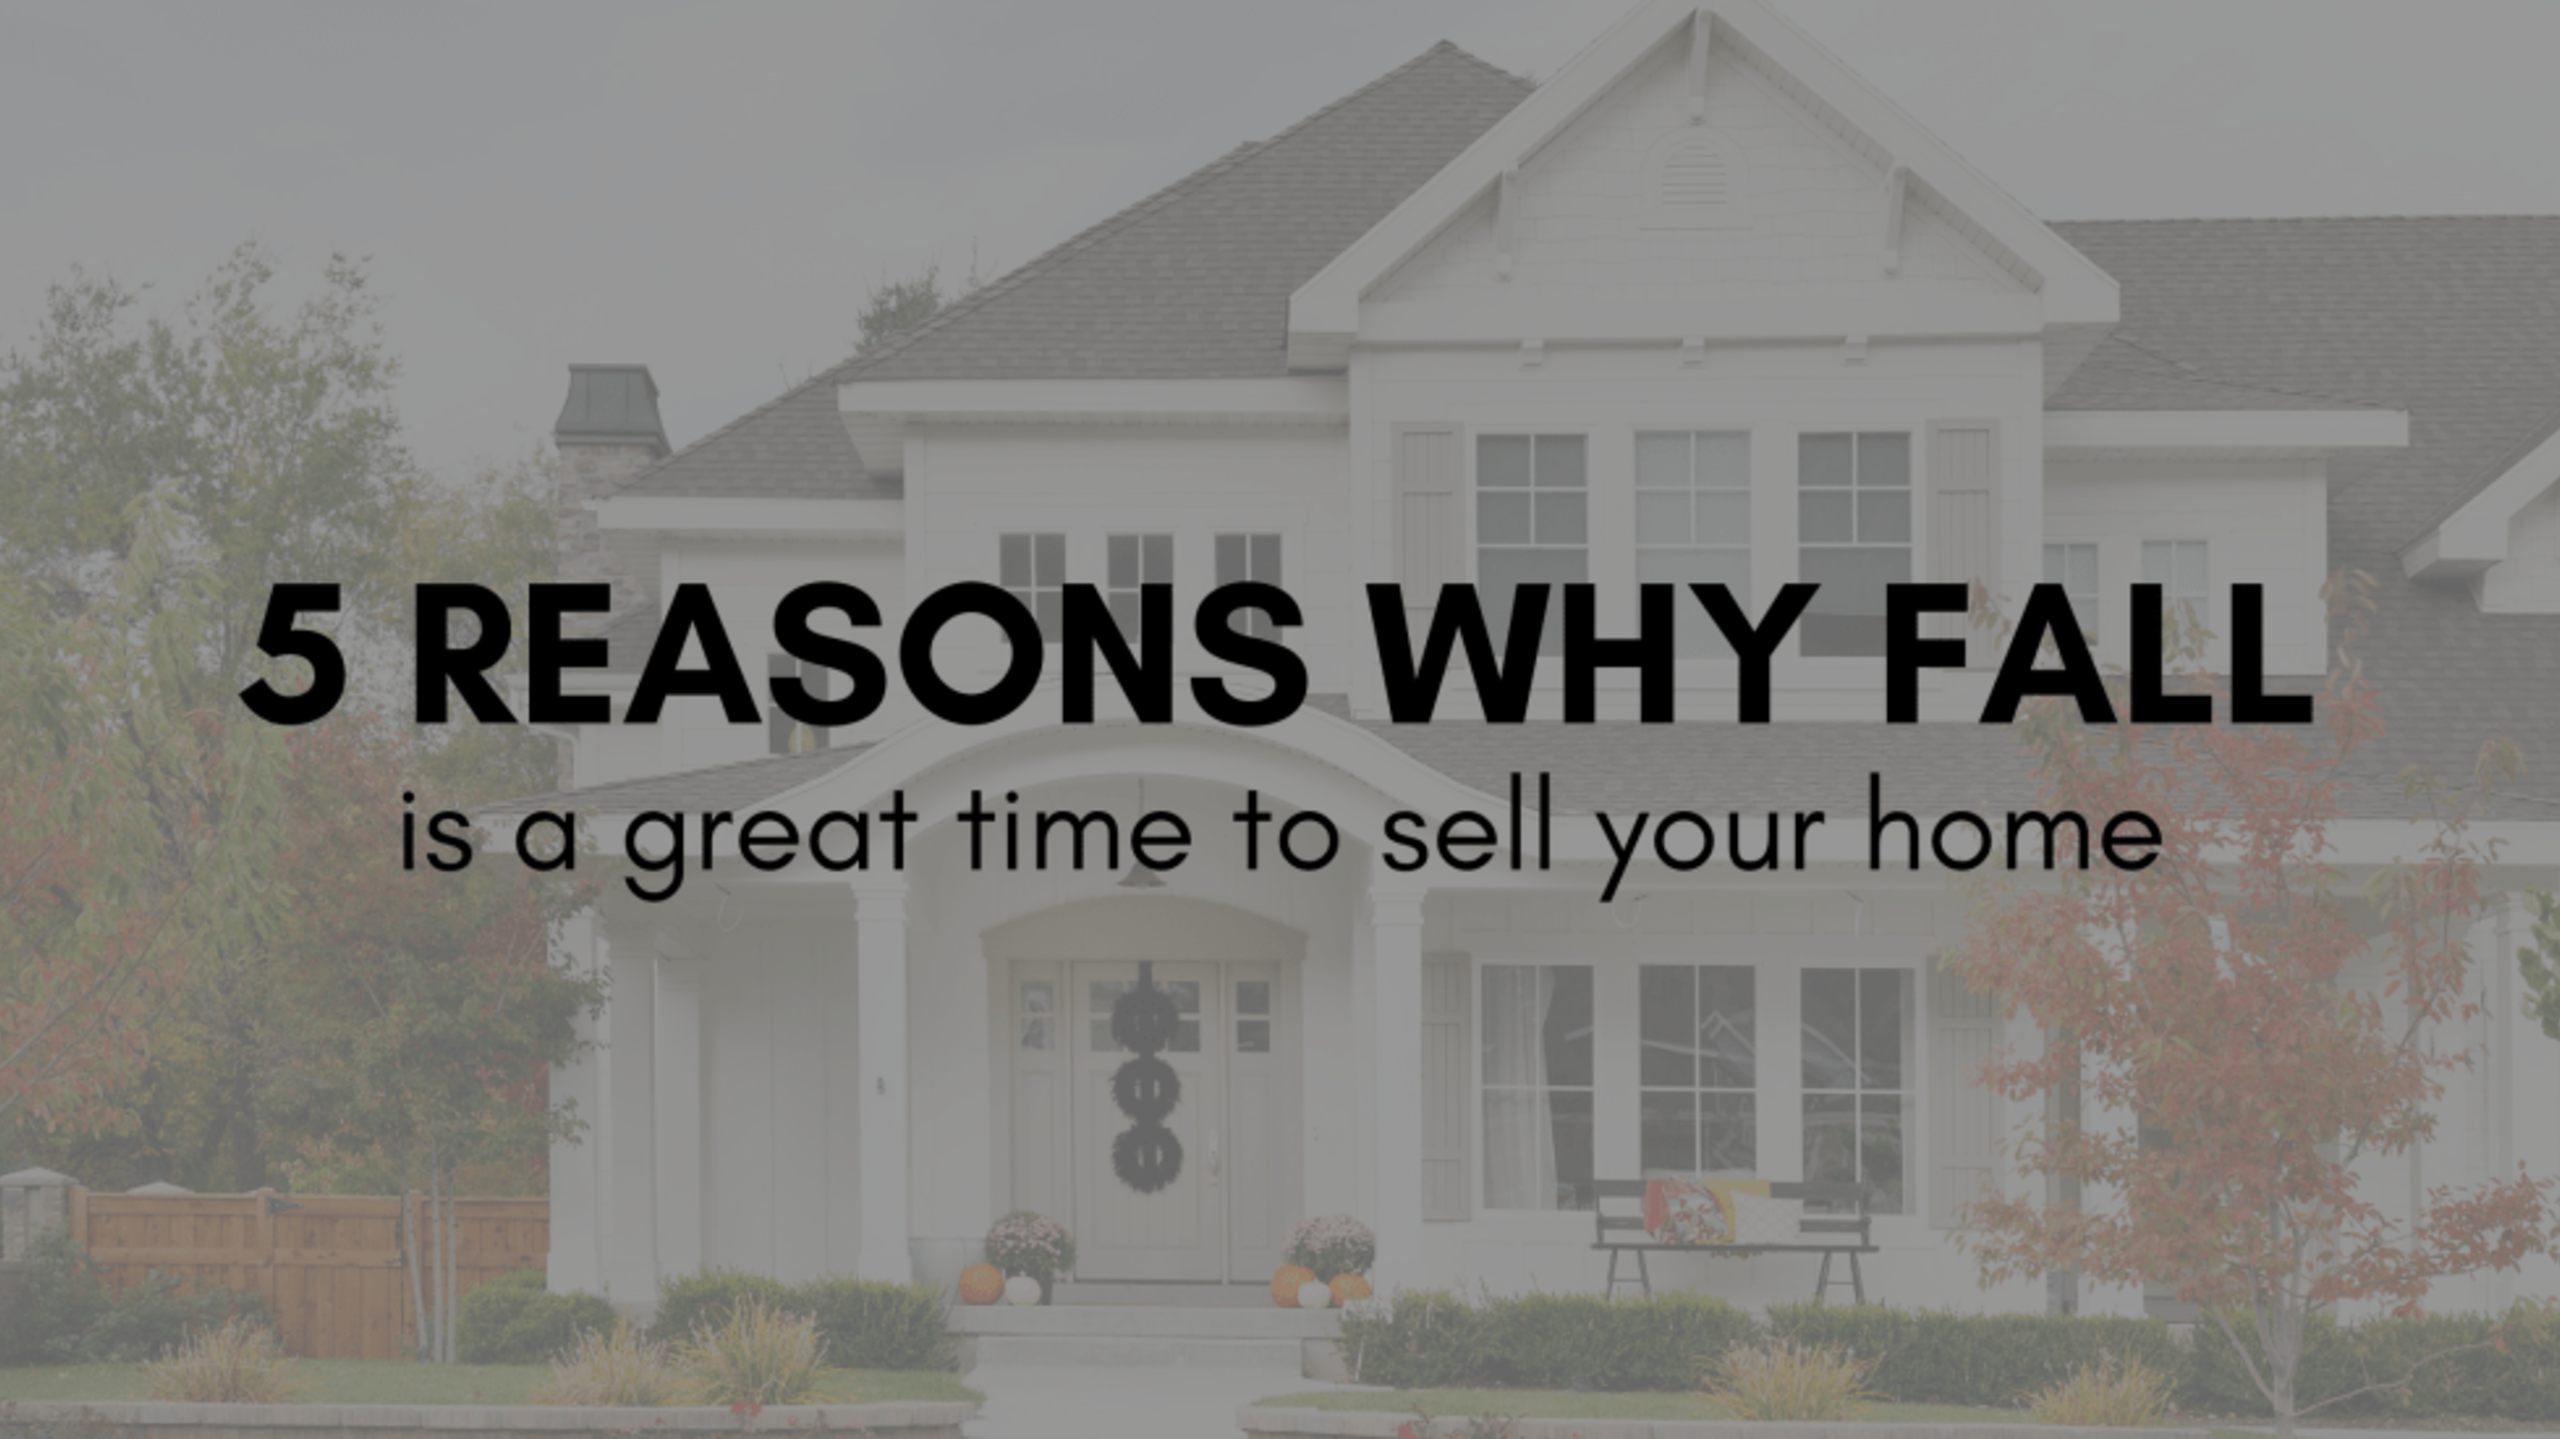 5 Reasons Why Fall is a Good Time to List Your Home